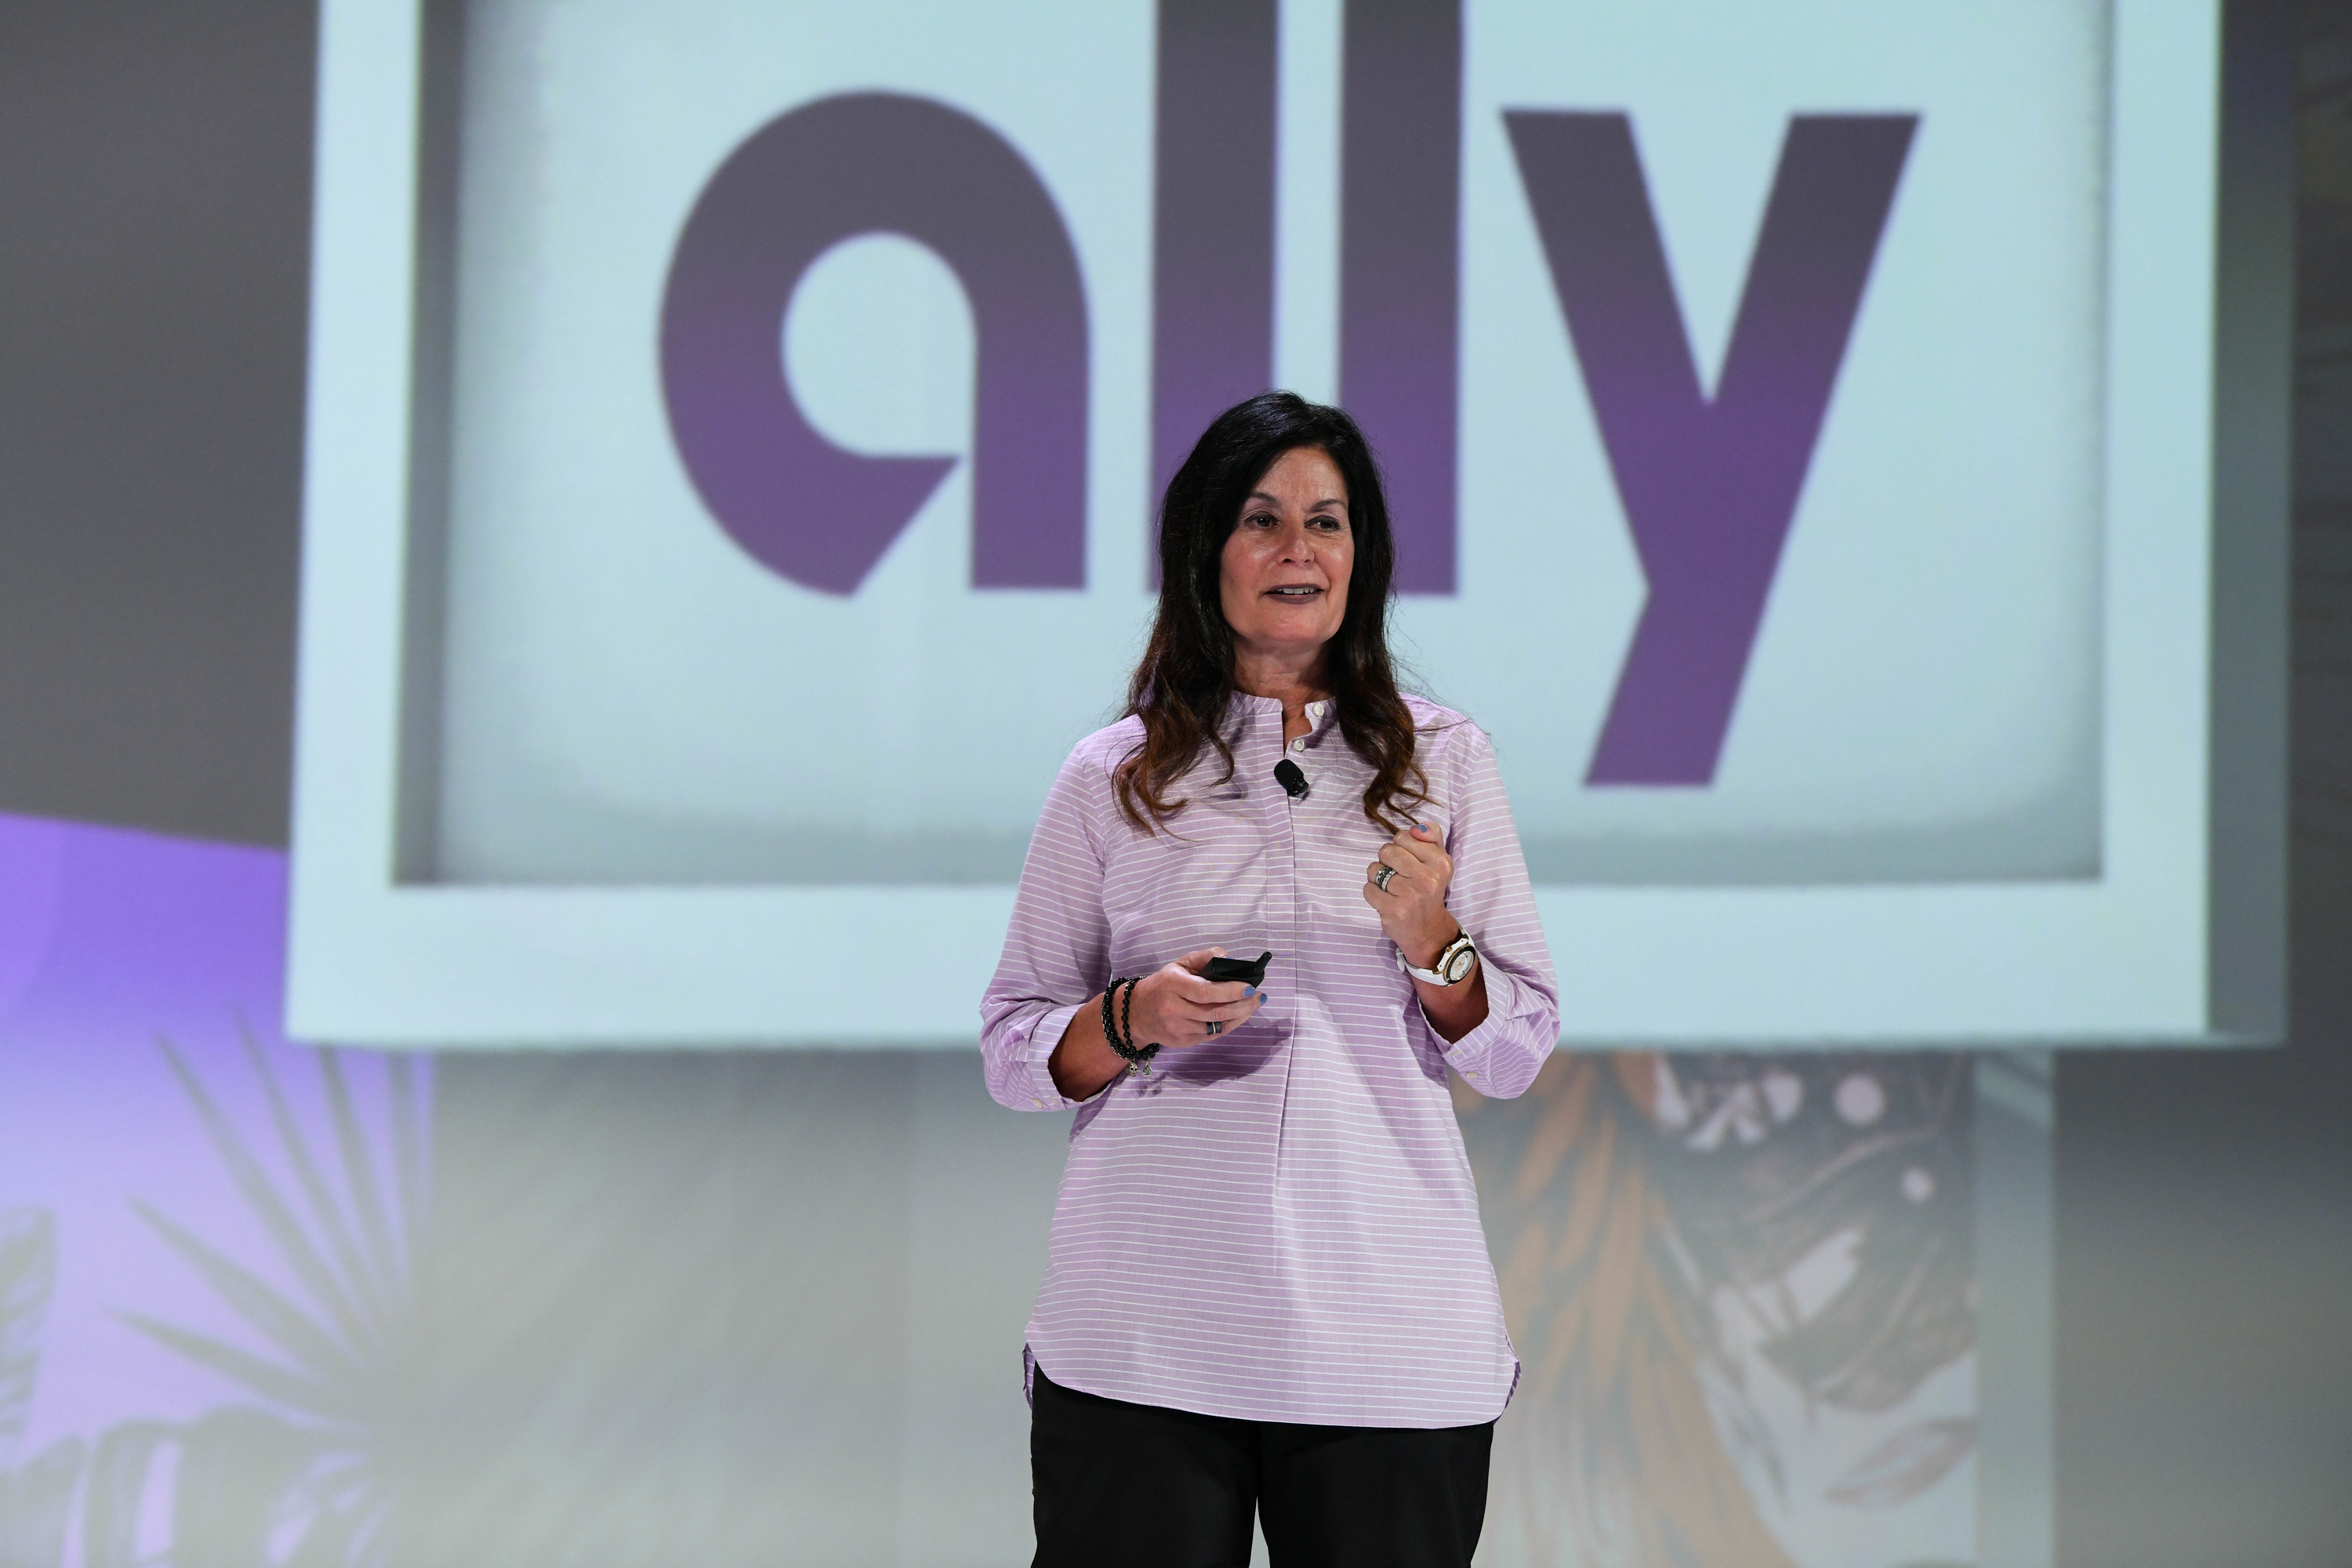 In recession, lean into your brand, says Ally's Andrea Brimmer